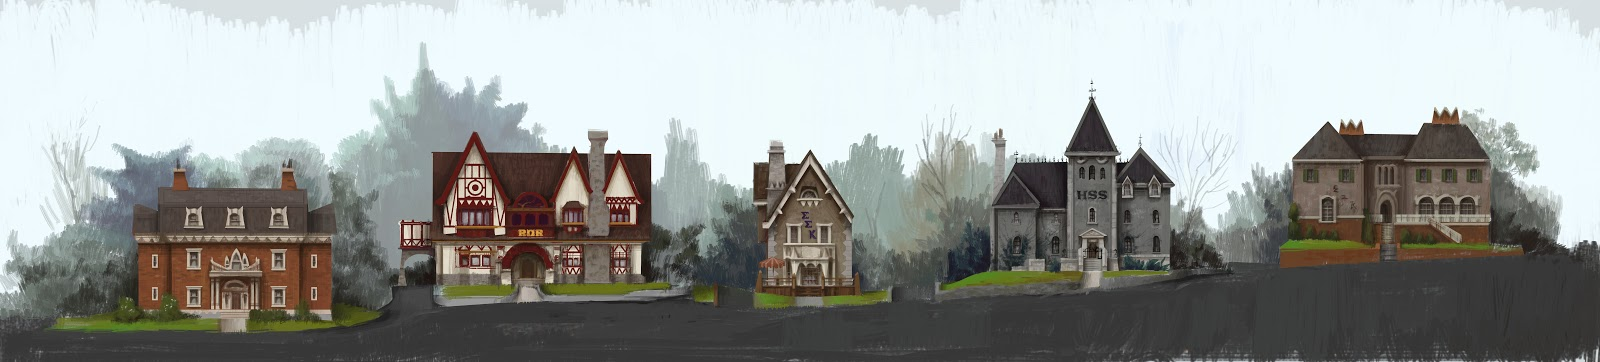 Monsters University Concept Art - Frat Houses